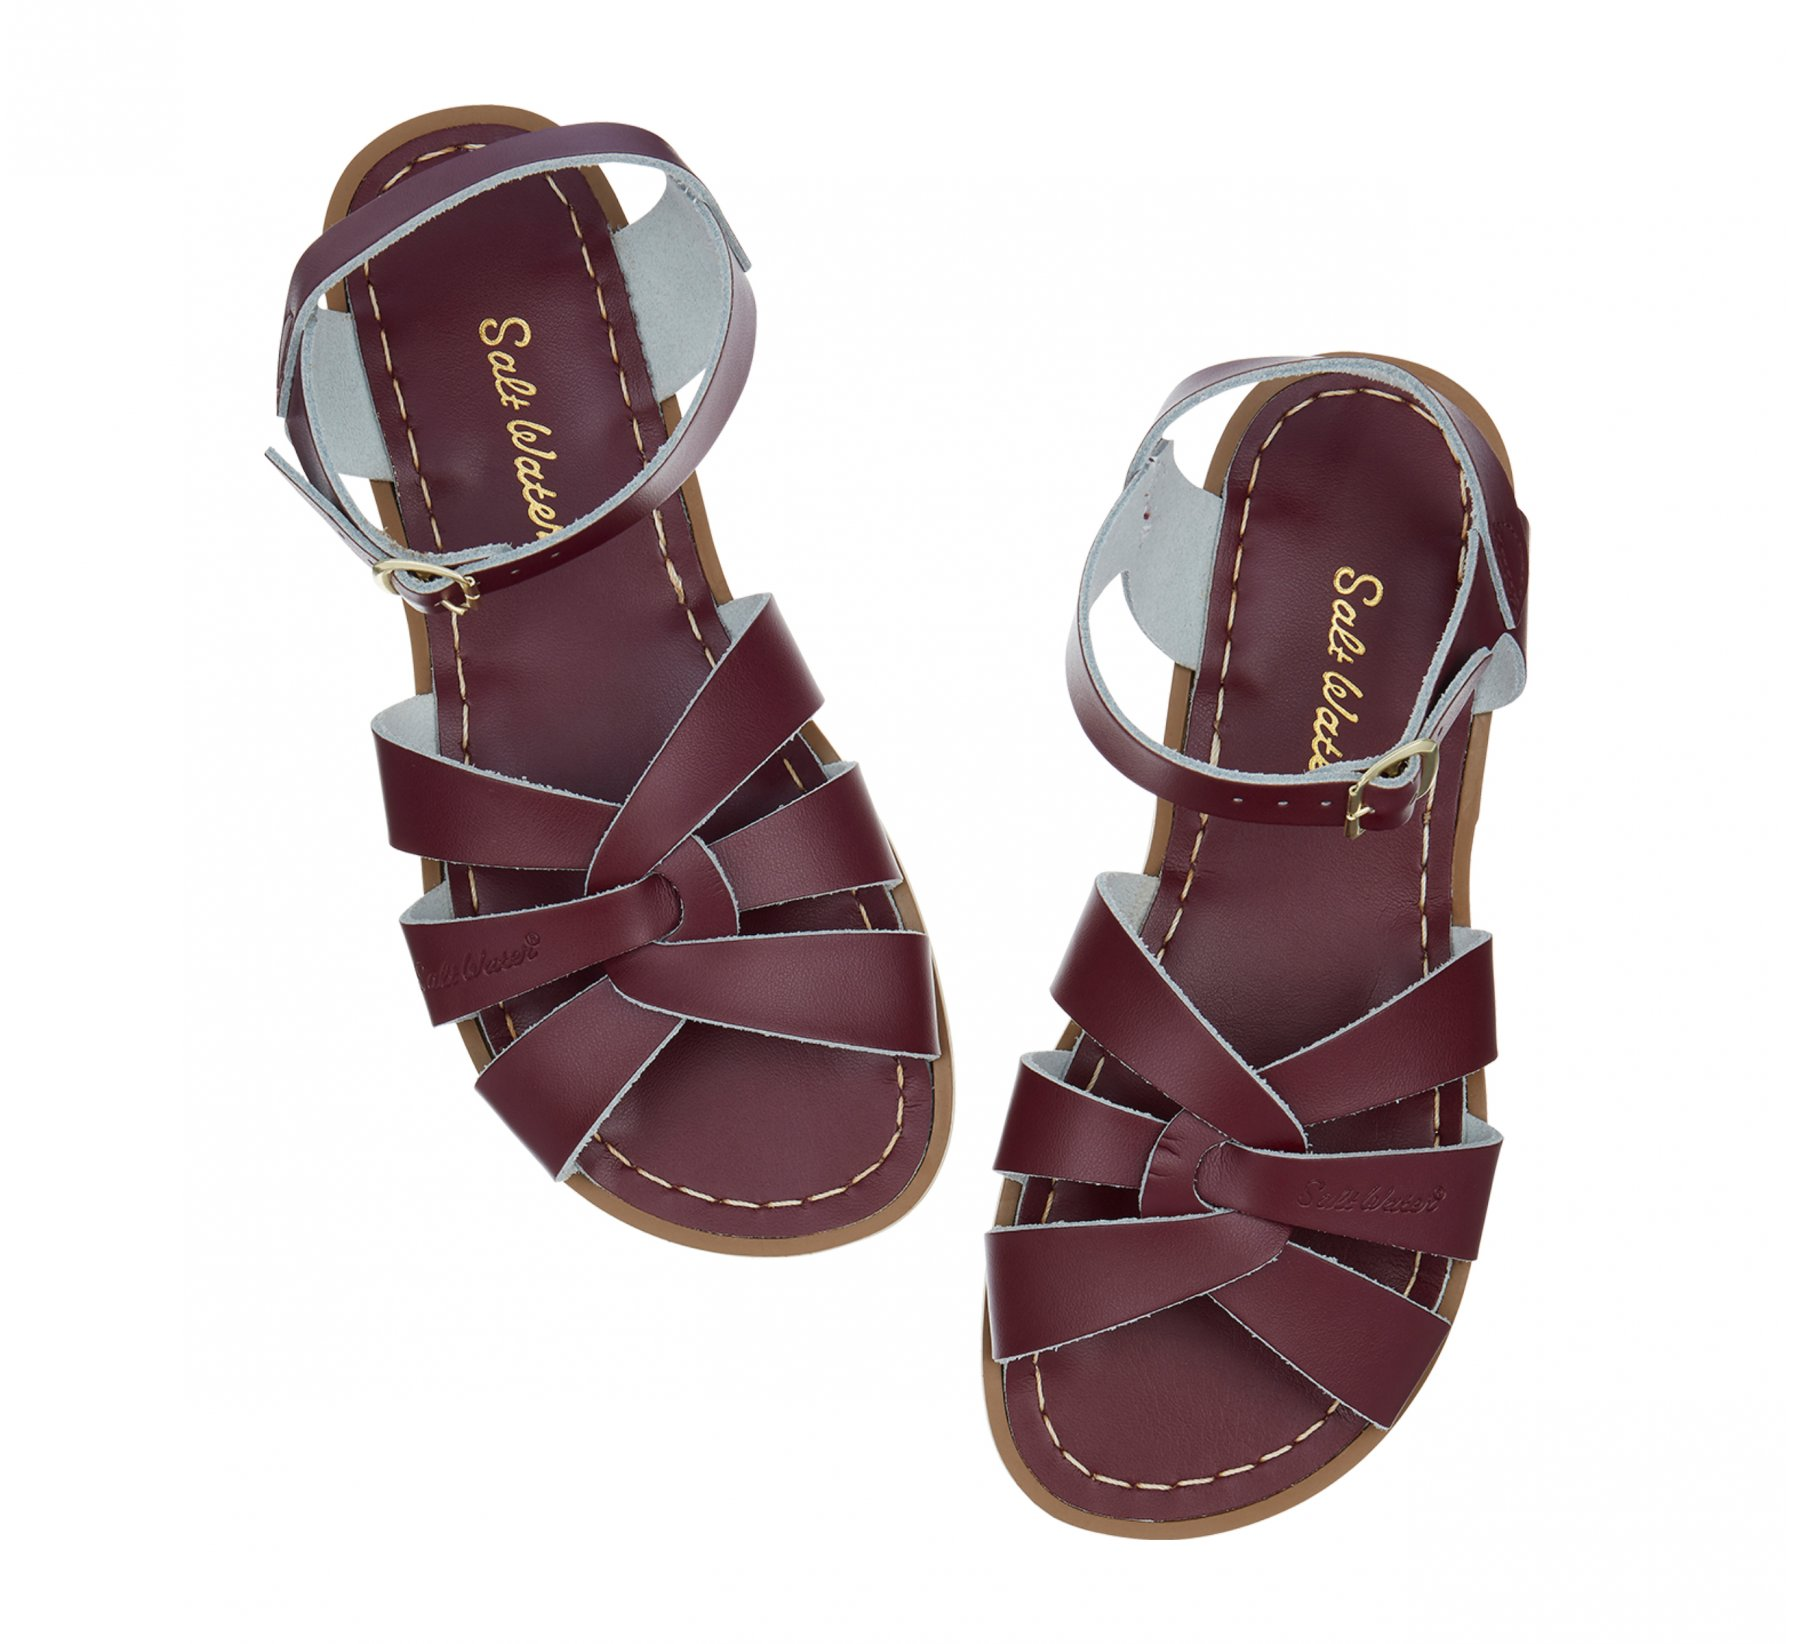 Original Claret - Salt Water Sandals